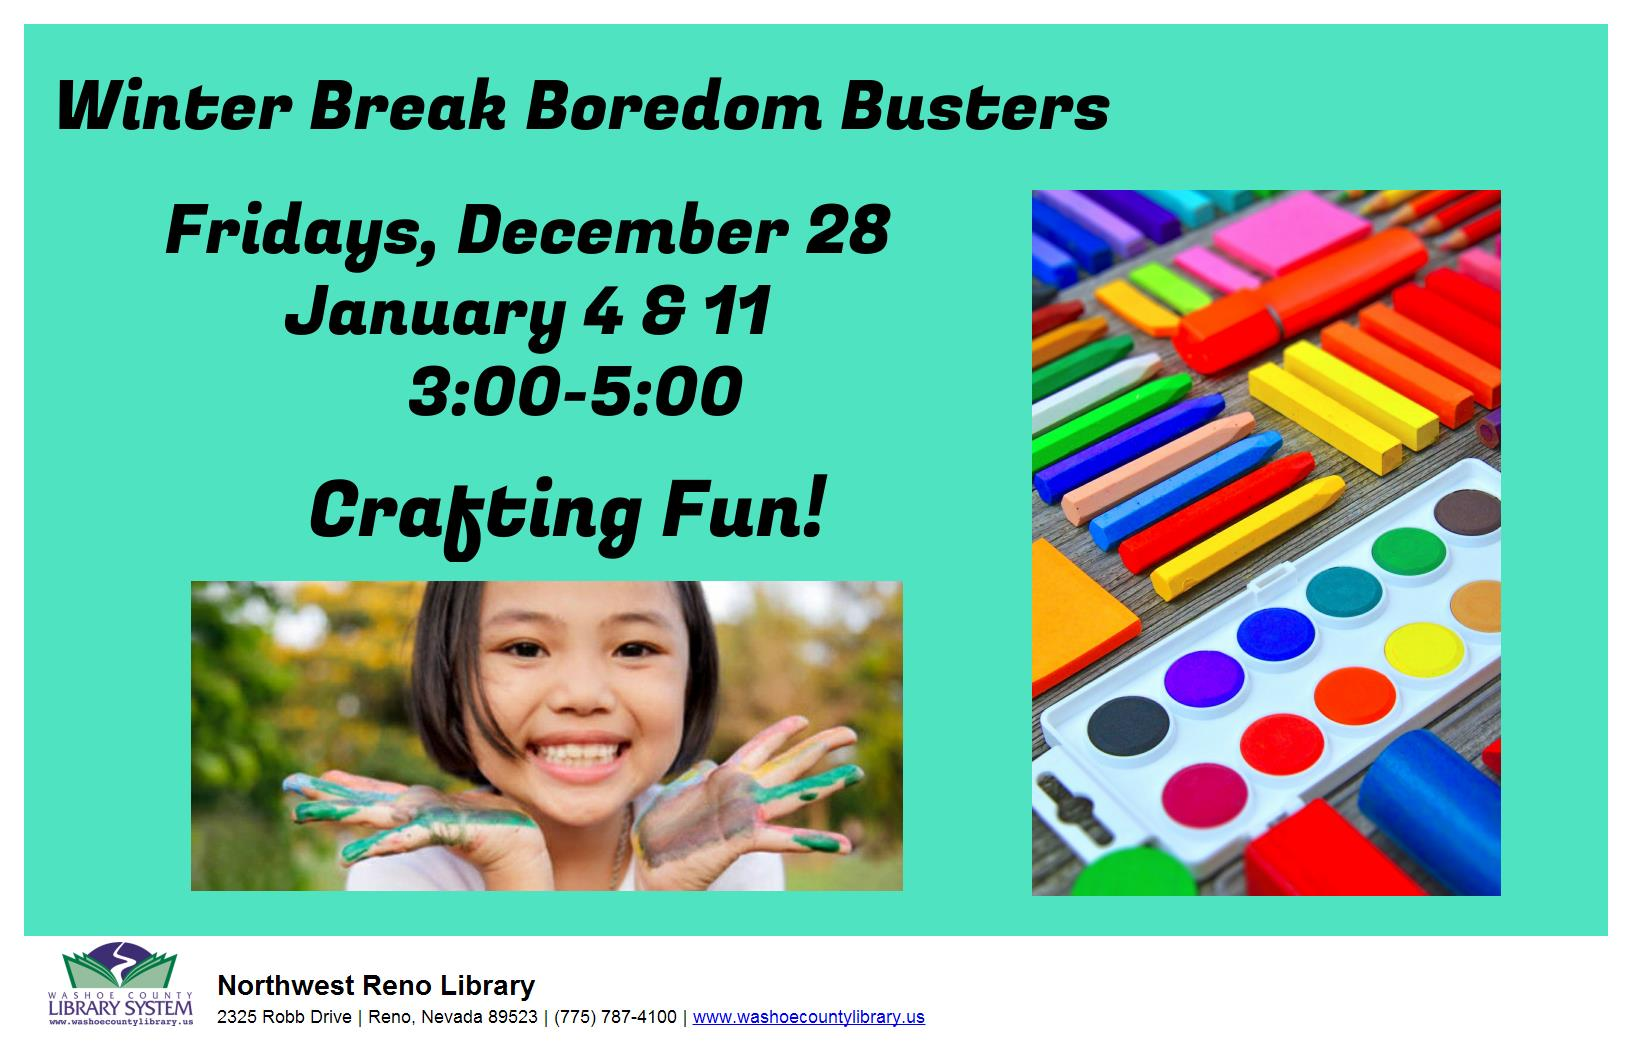 Boredom Busters: Crafting Fun!